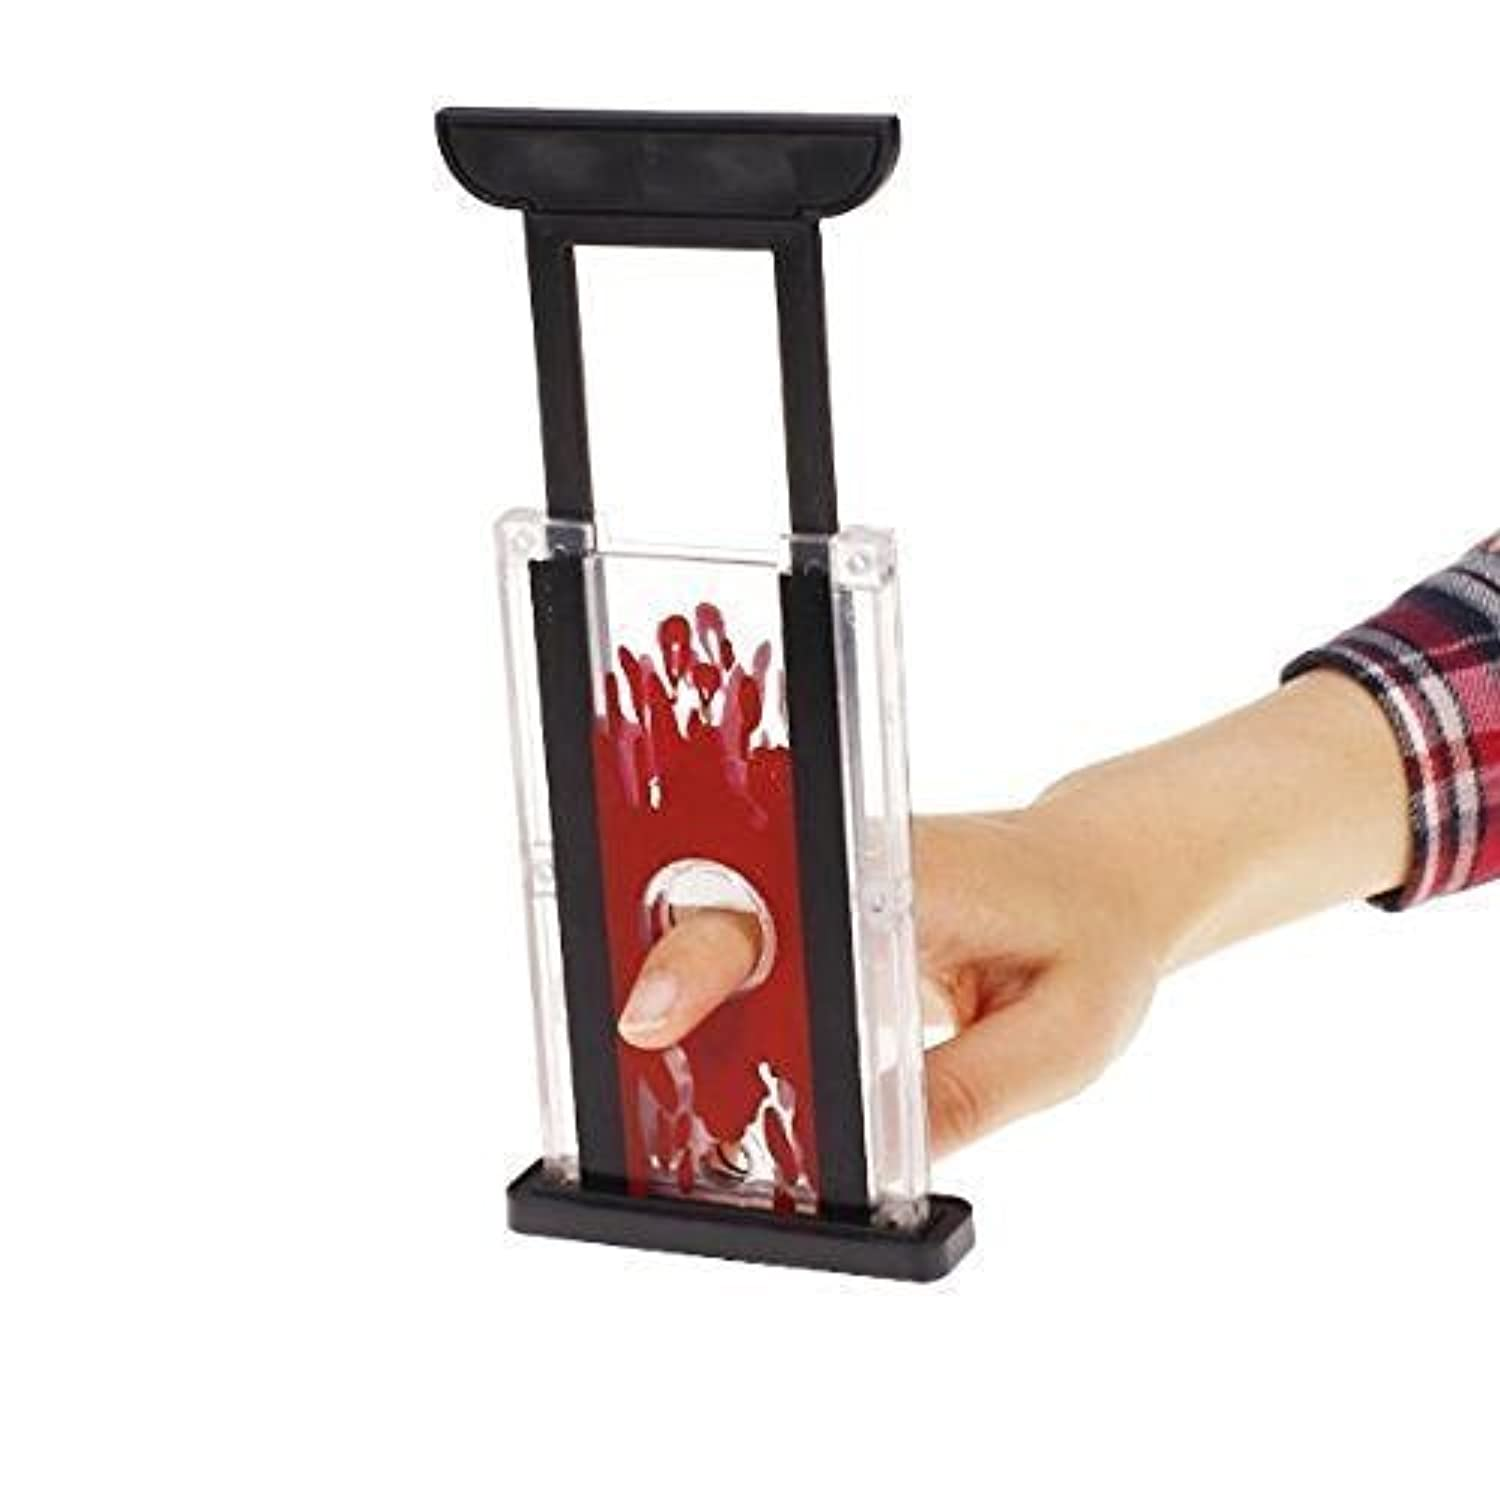 Finger Hay Cutter Chopper Magician Trick Prop Magic Toy - One Item w/Random Color and Design by Yeahgoshopping [並行輸入品]